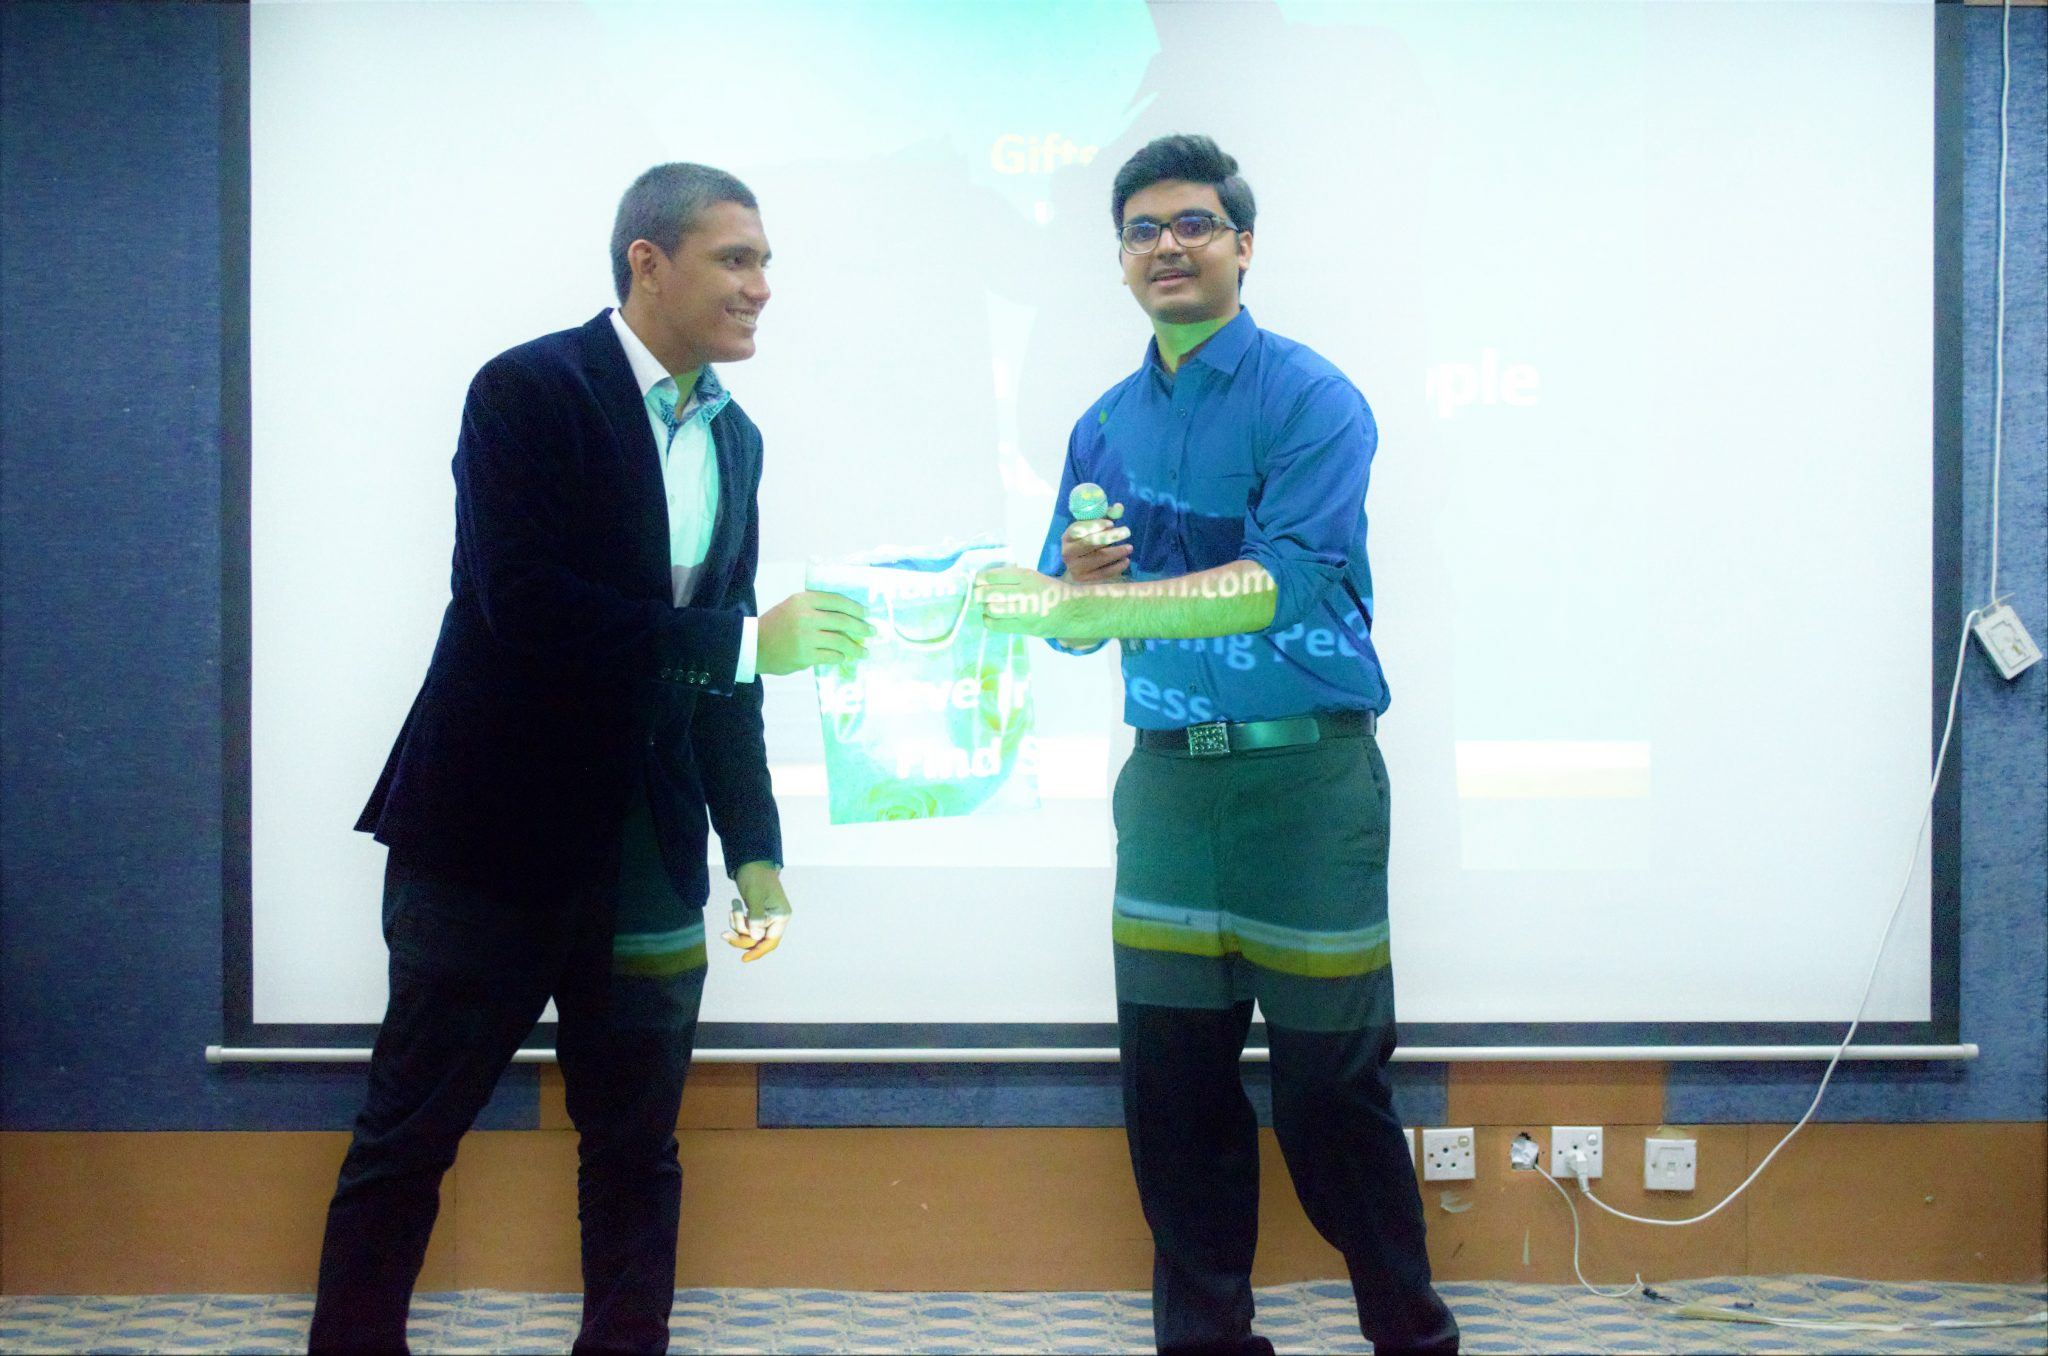 Getting Gift For The Speech